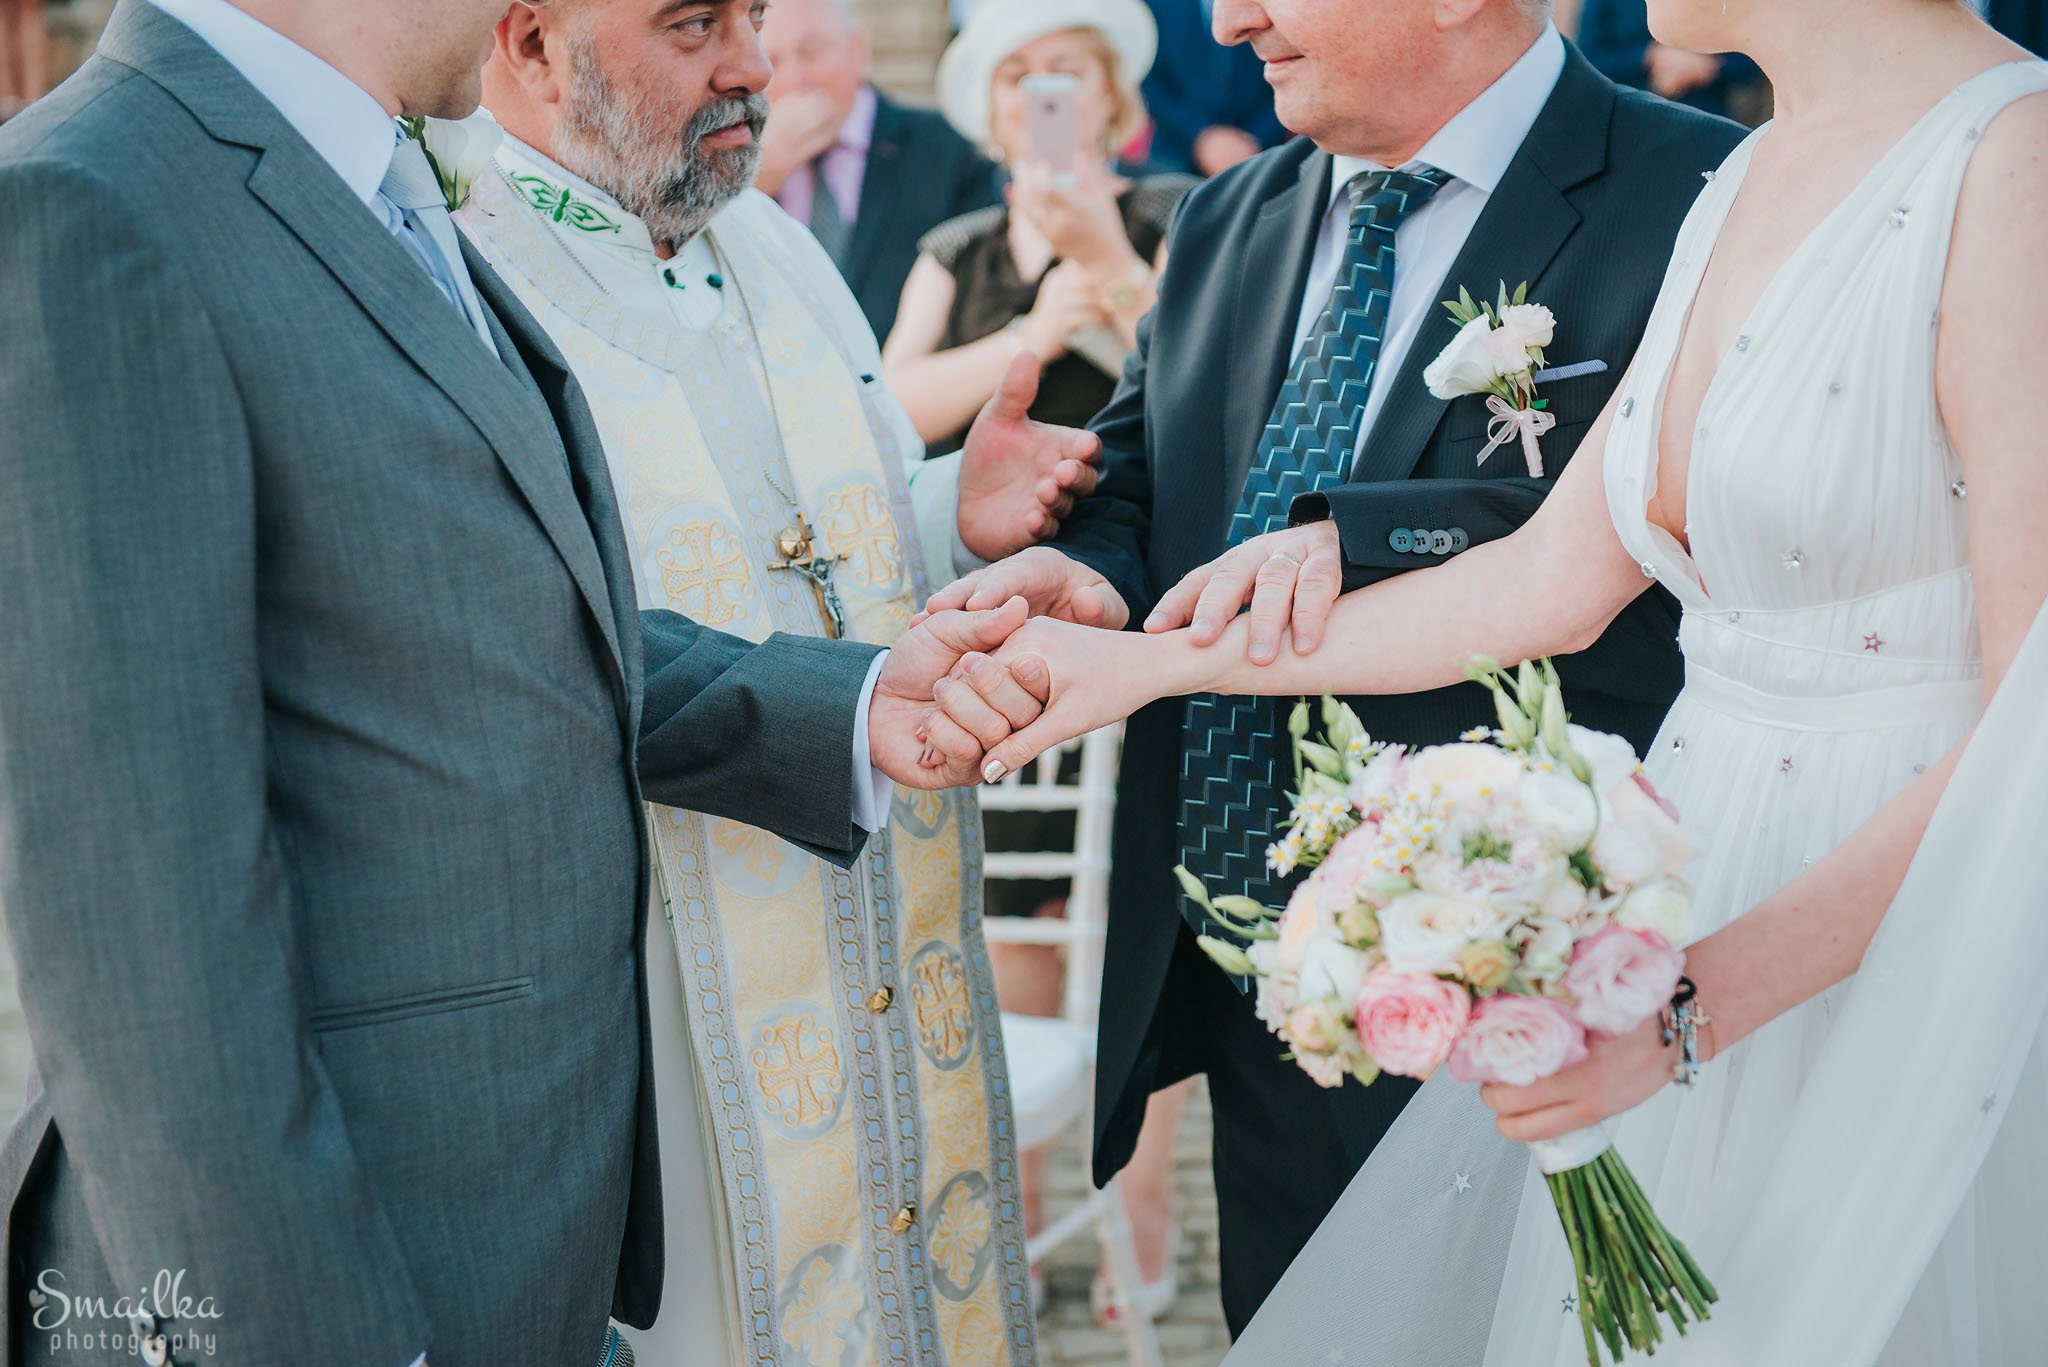 Bride and groom holding hands on a wedding ceremony